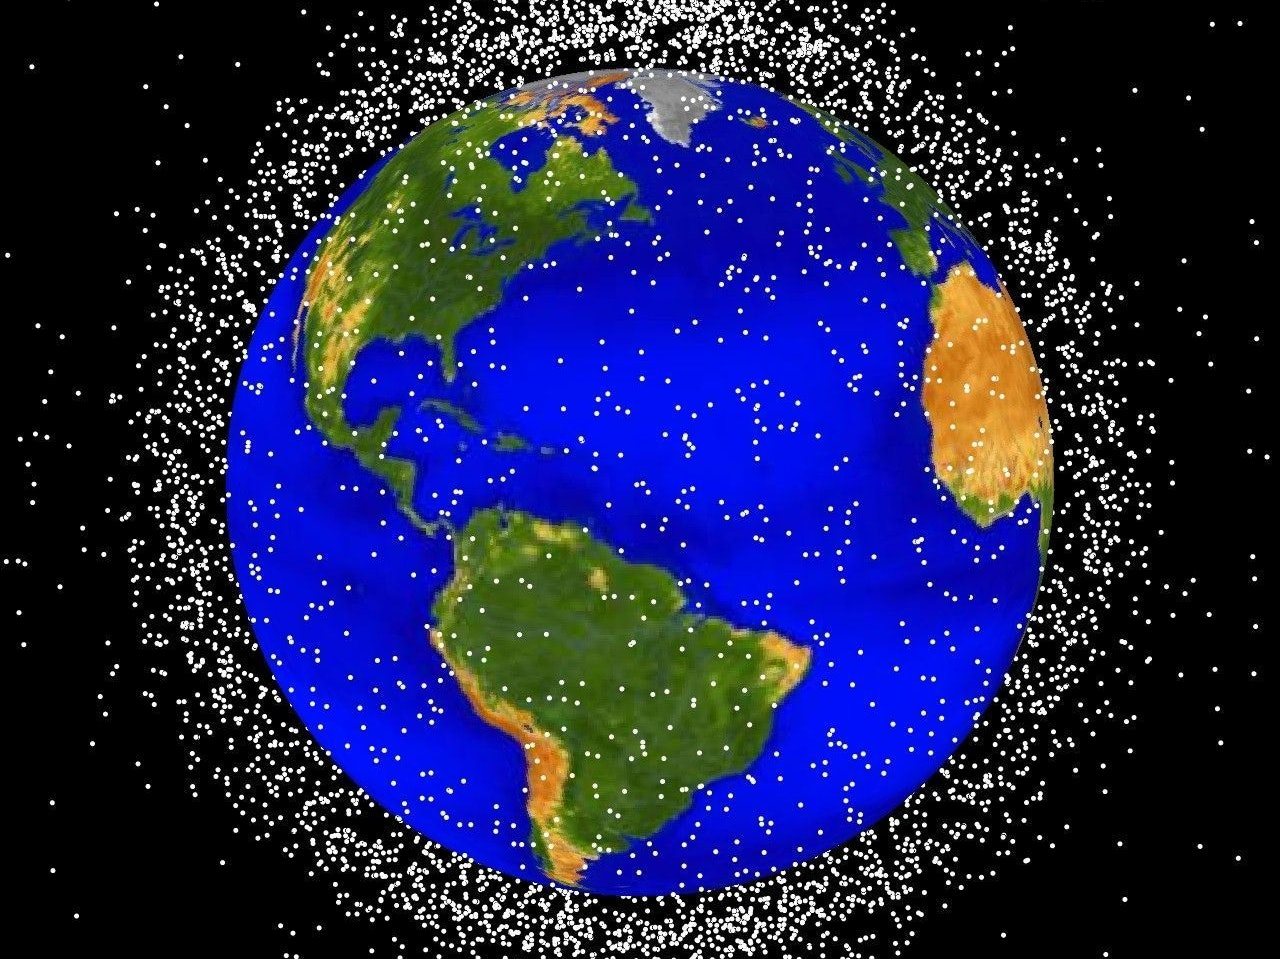 debris plot by NASAThe following graphics are computer generated images of objects in Earth orbit that are currently being tracked. Approximately 95% of the objects in this illustration are orbital debris, i.e., not functional satellites. The dots represent the current location of each item. The orbital debris dots are scaled according to the image size of the graphic to optimize their visibility and are not scaled to Earth. These images provide a good visualization of where the greatest orbital debris populations exist. Below are the graphics generated from different observation points. LEO stands for low Earth orbit and is the region of space within 2,000 km of the Earth's surface. It is the most concentrated area for orbital debris.